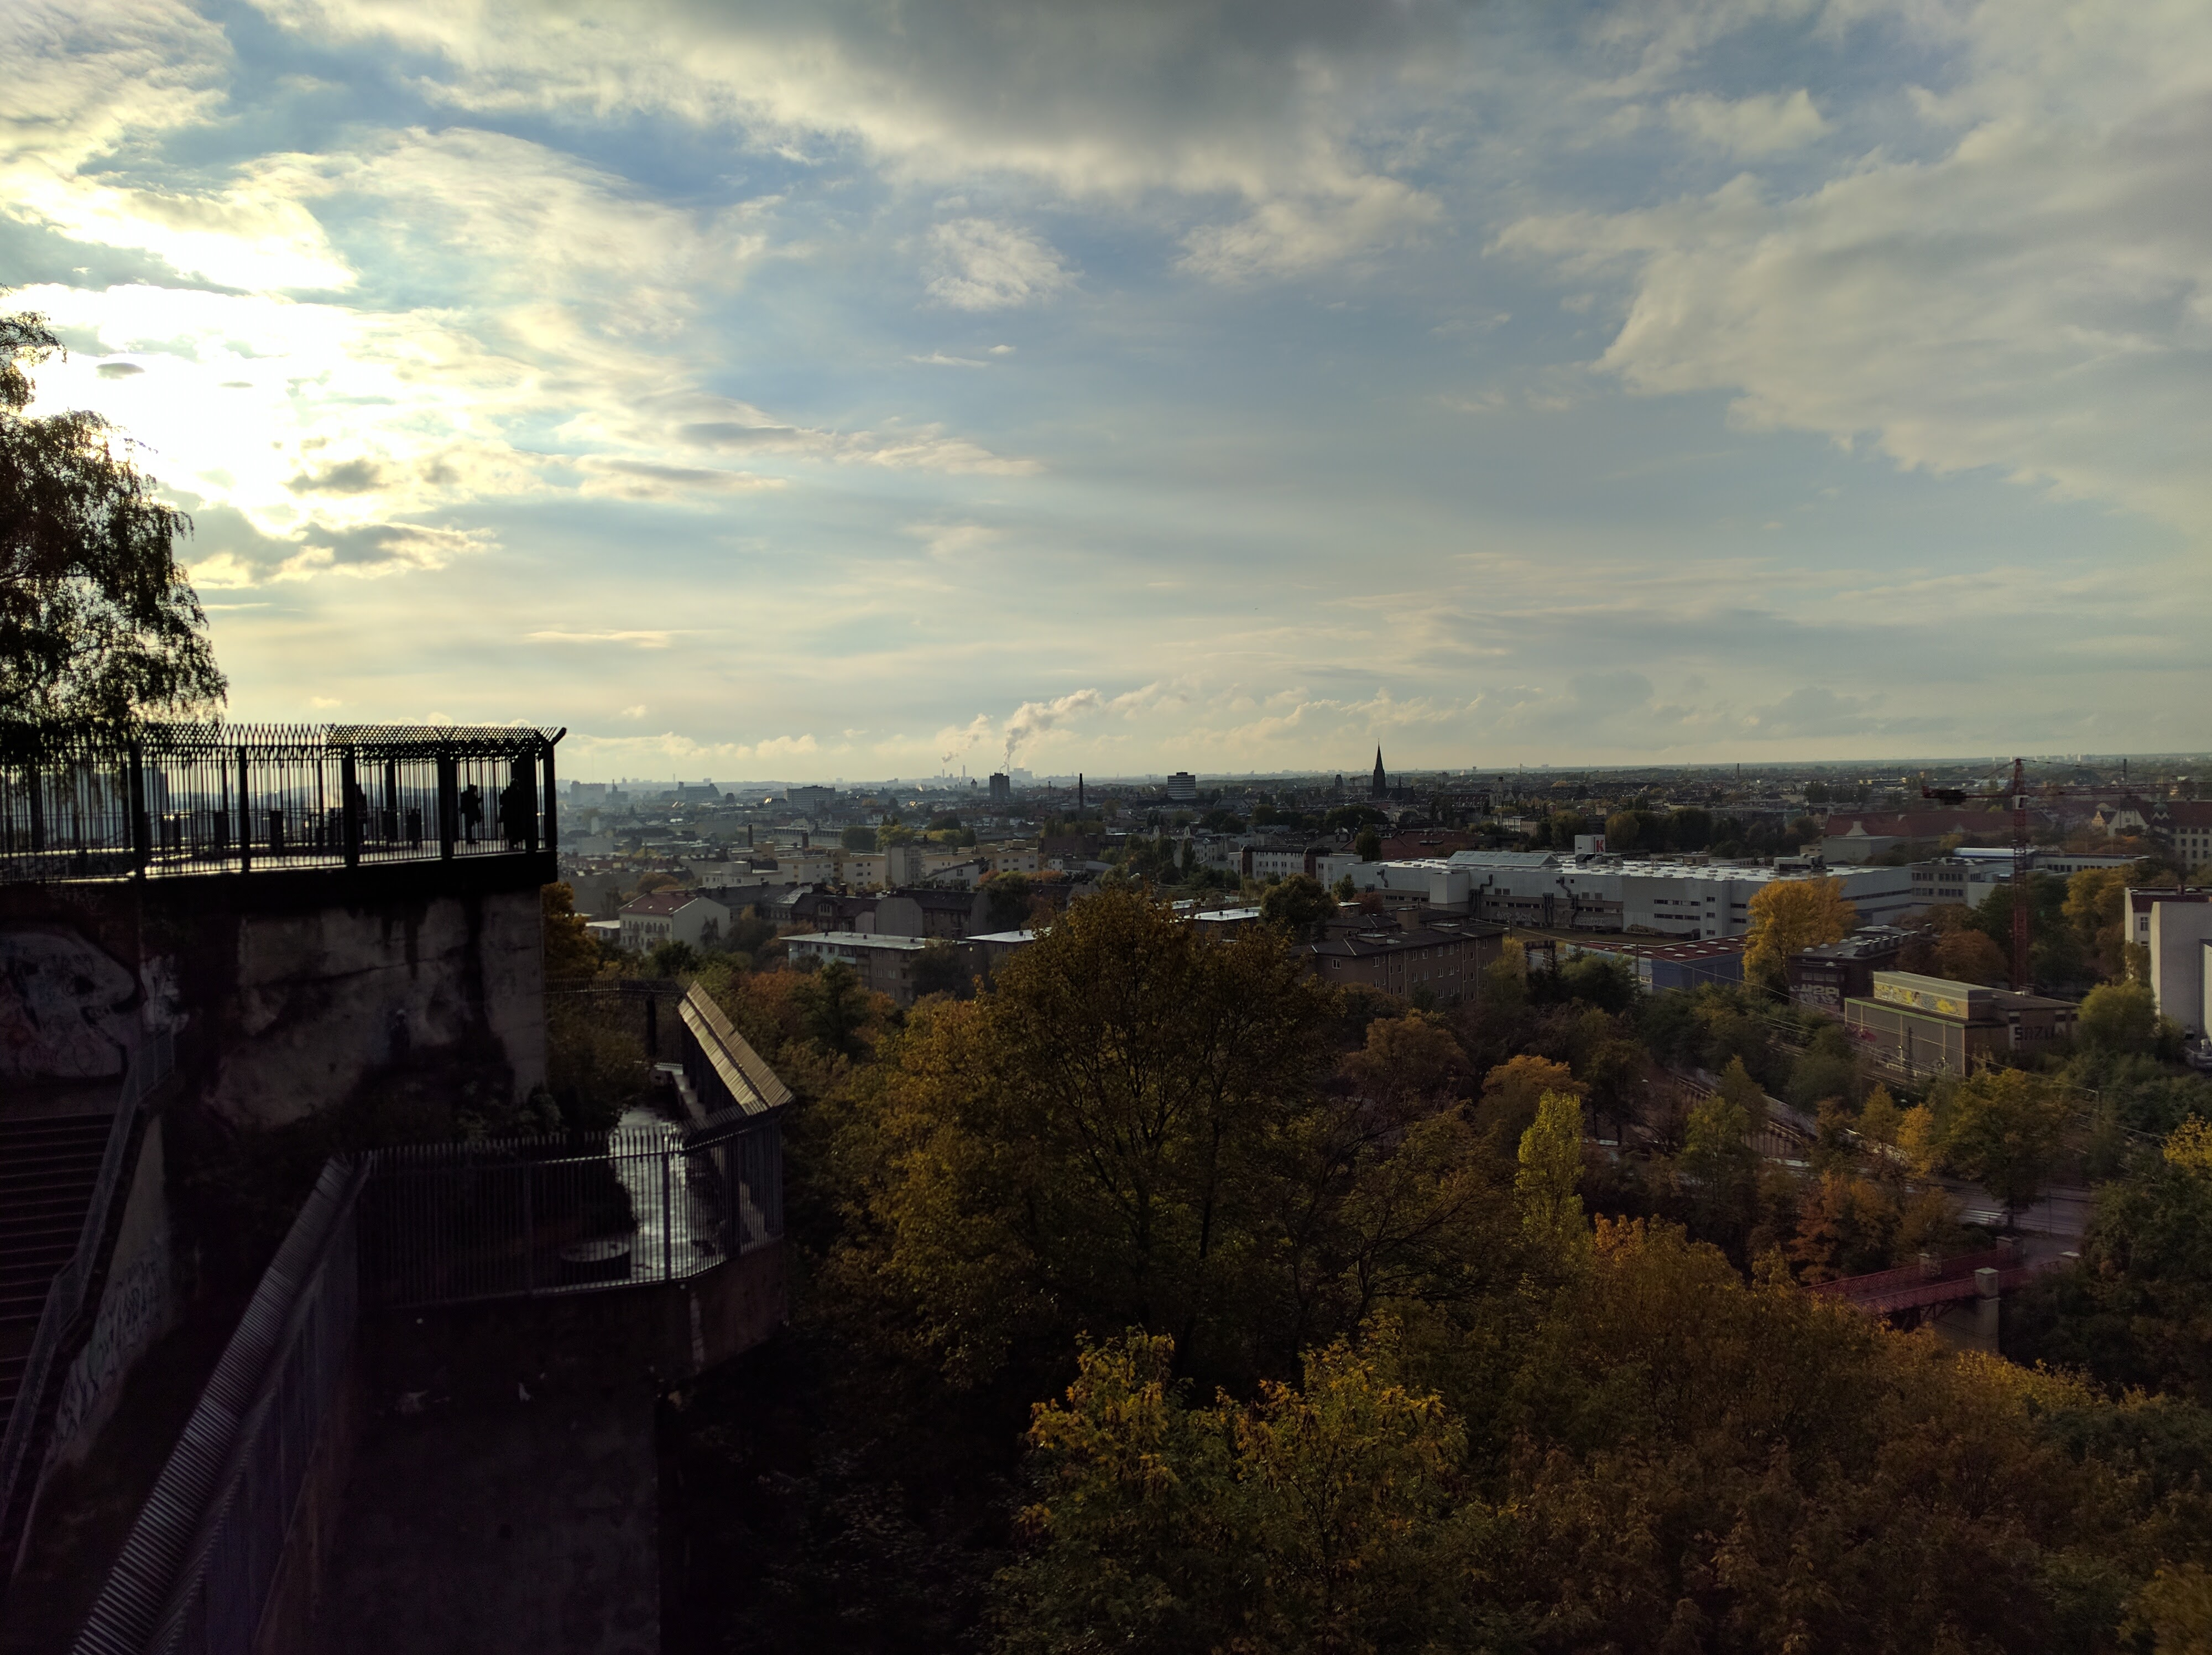 atop the flack tower